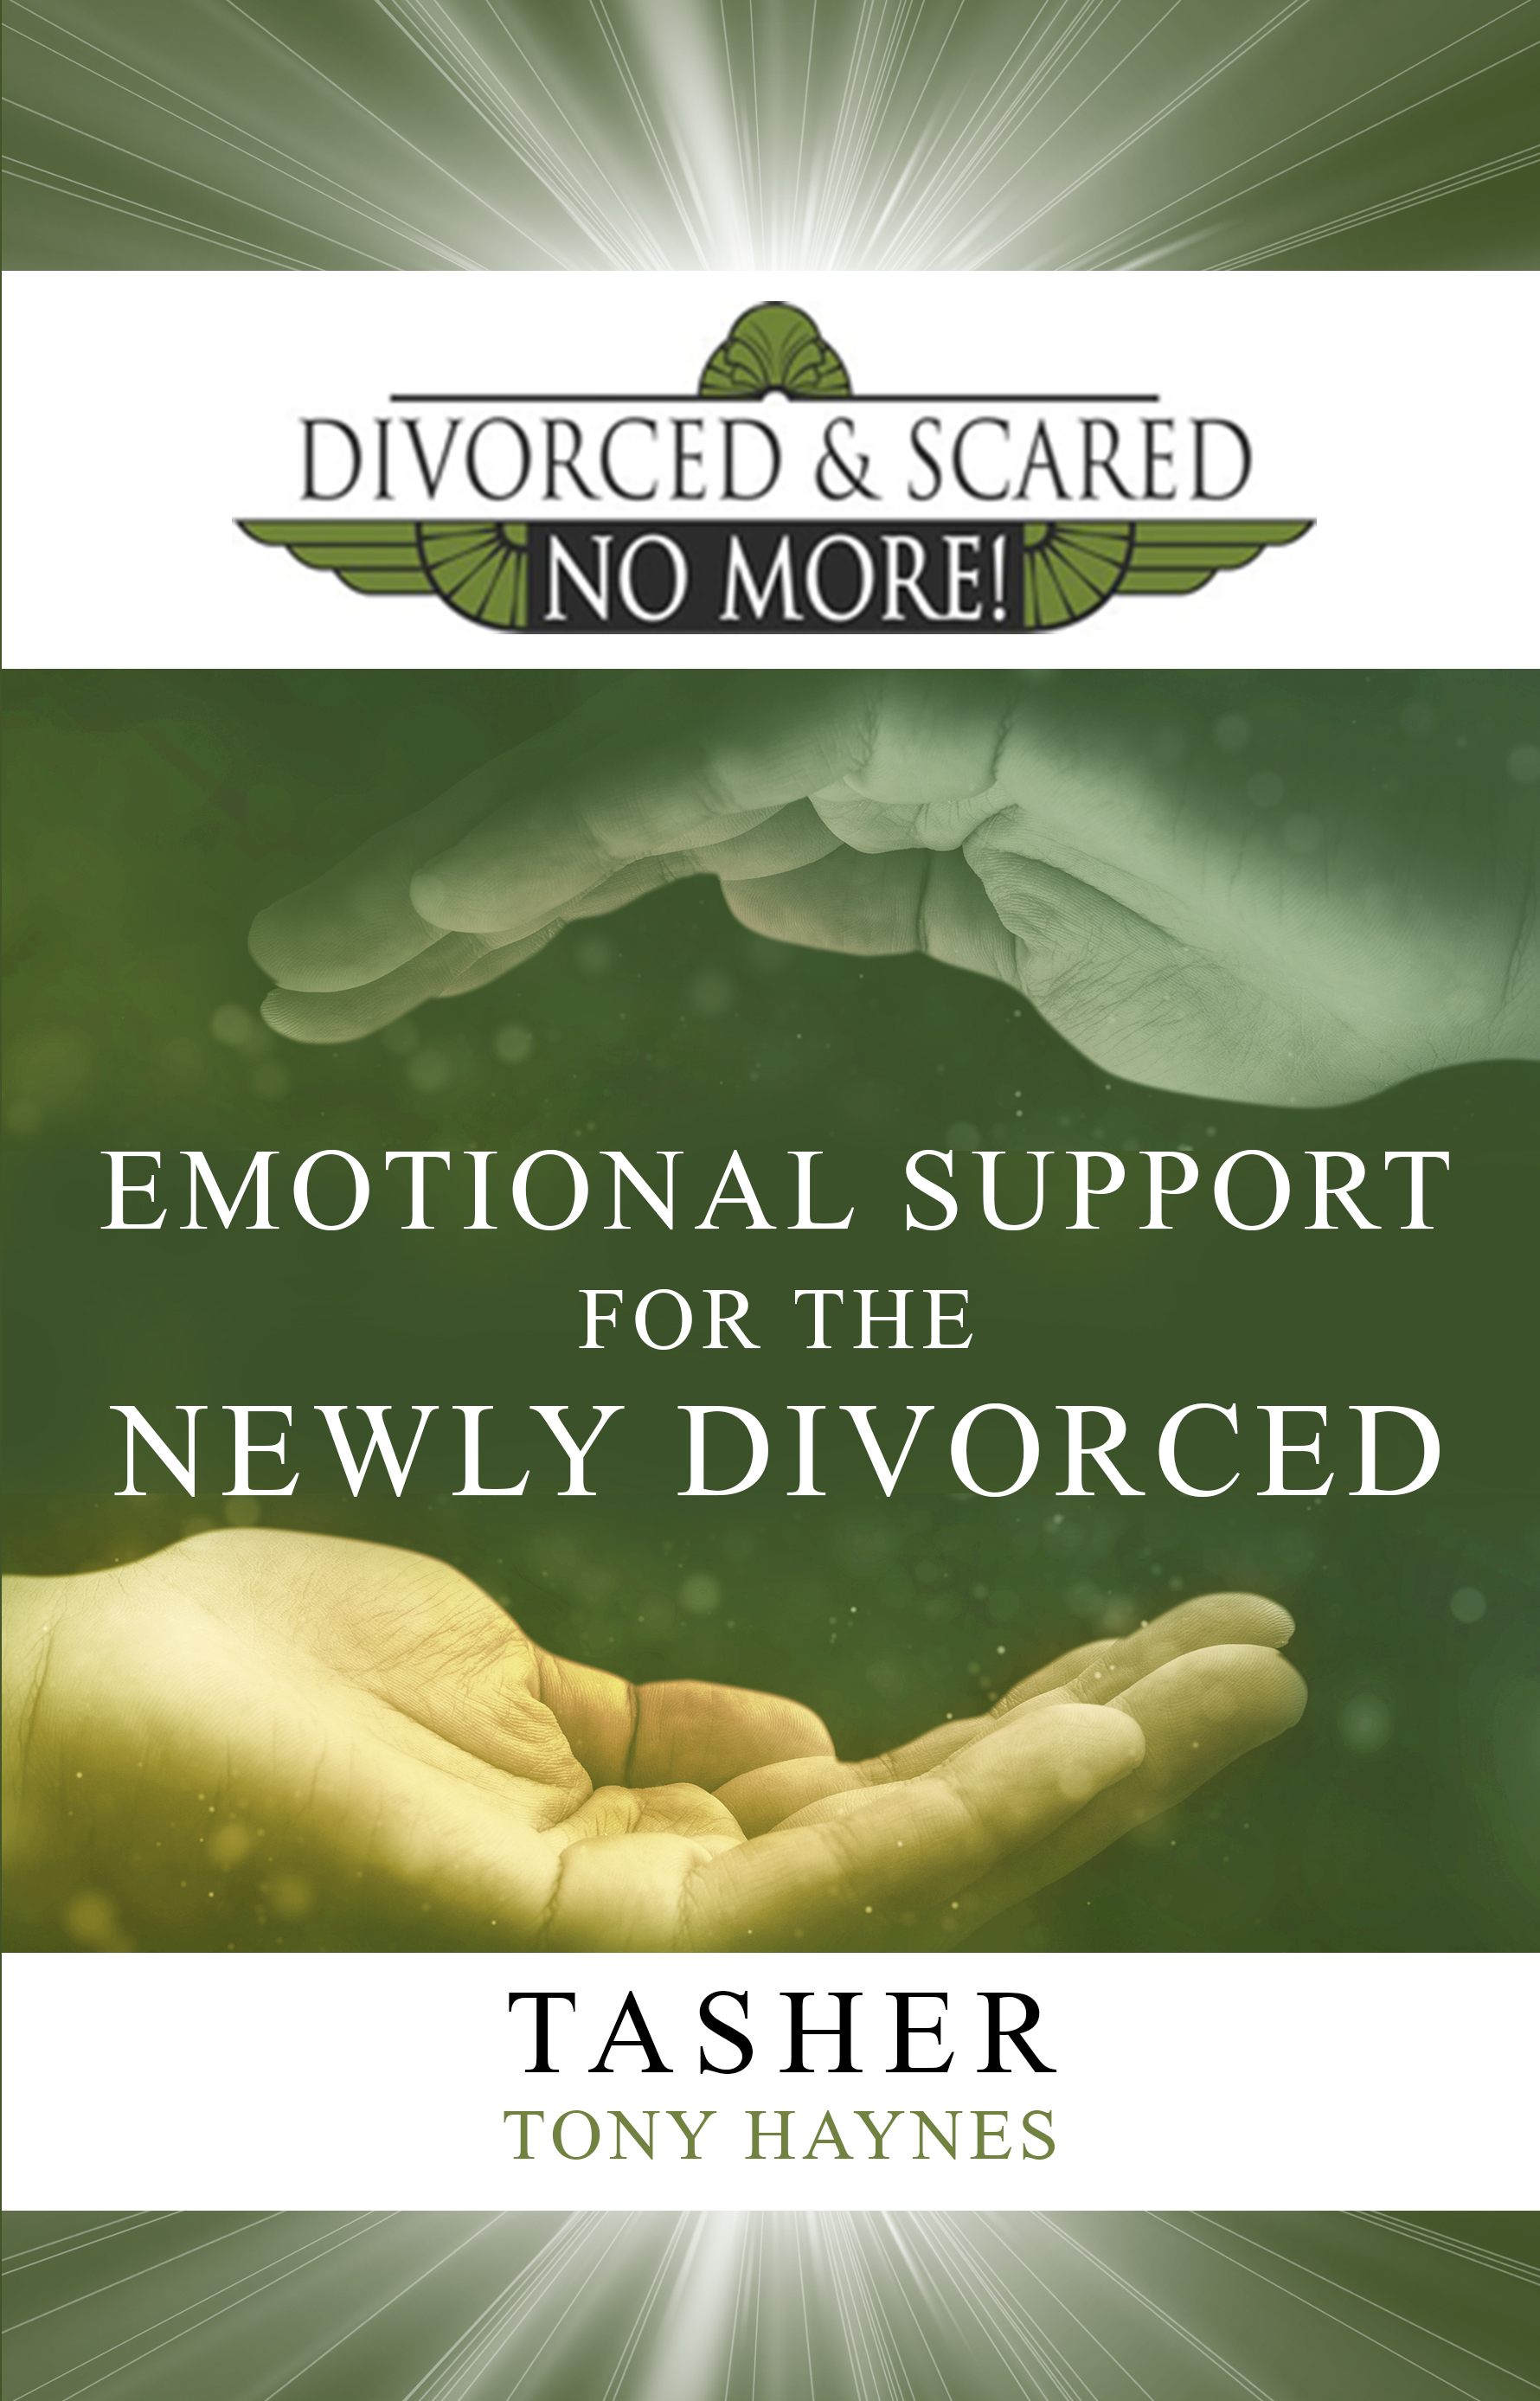 Emotional support for the newly divorced